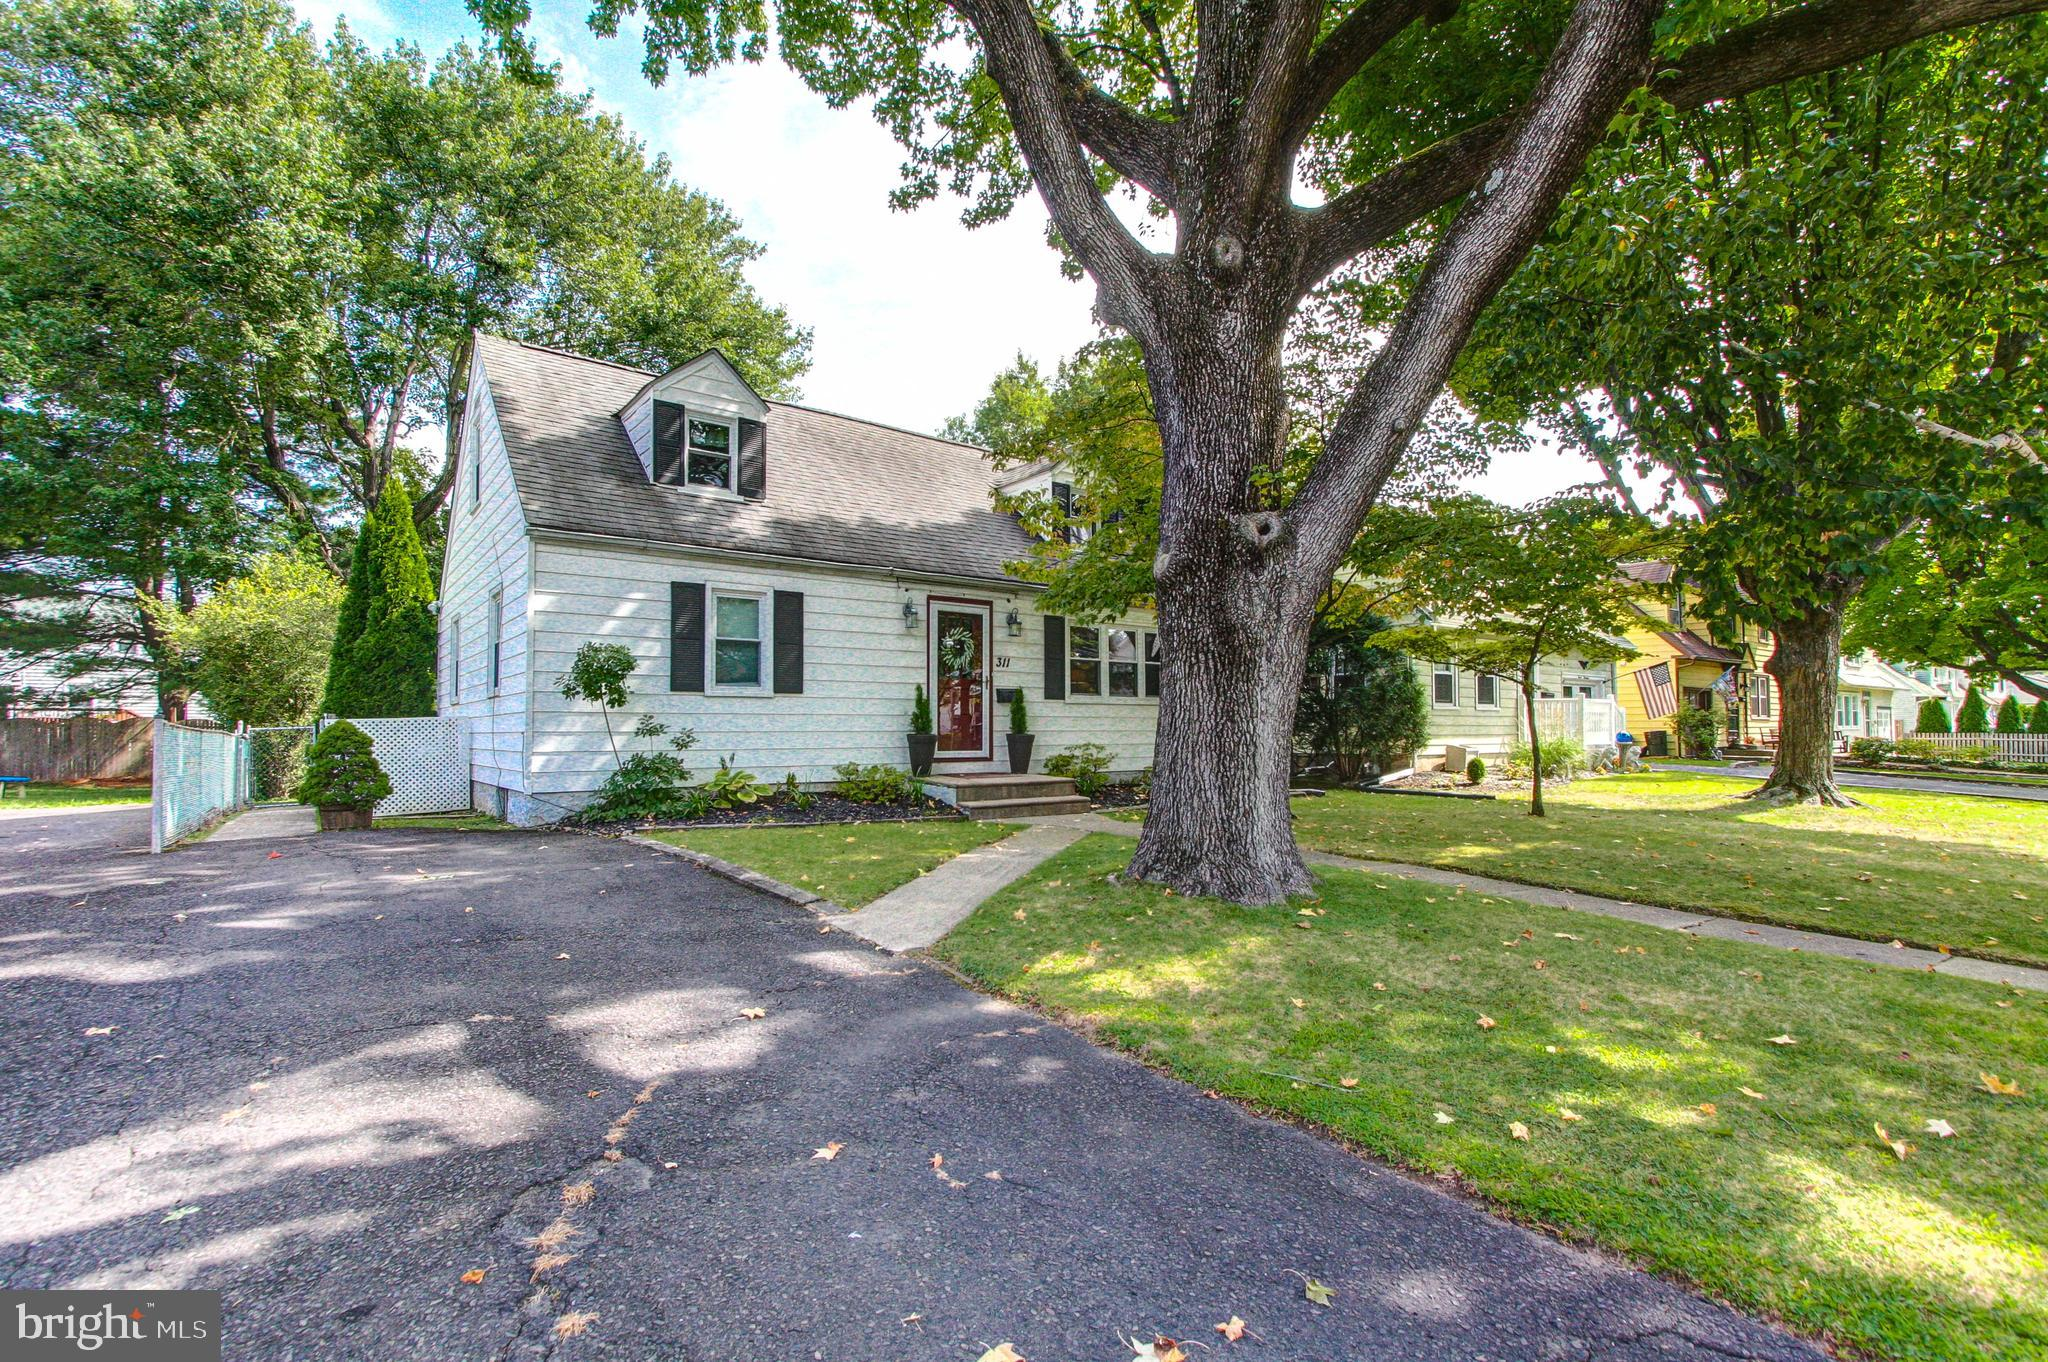 311 EVANS AVENUE, WILLOW GROVE, PA 19090